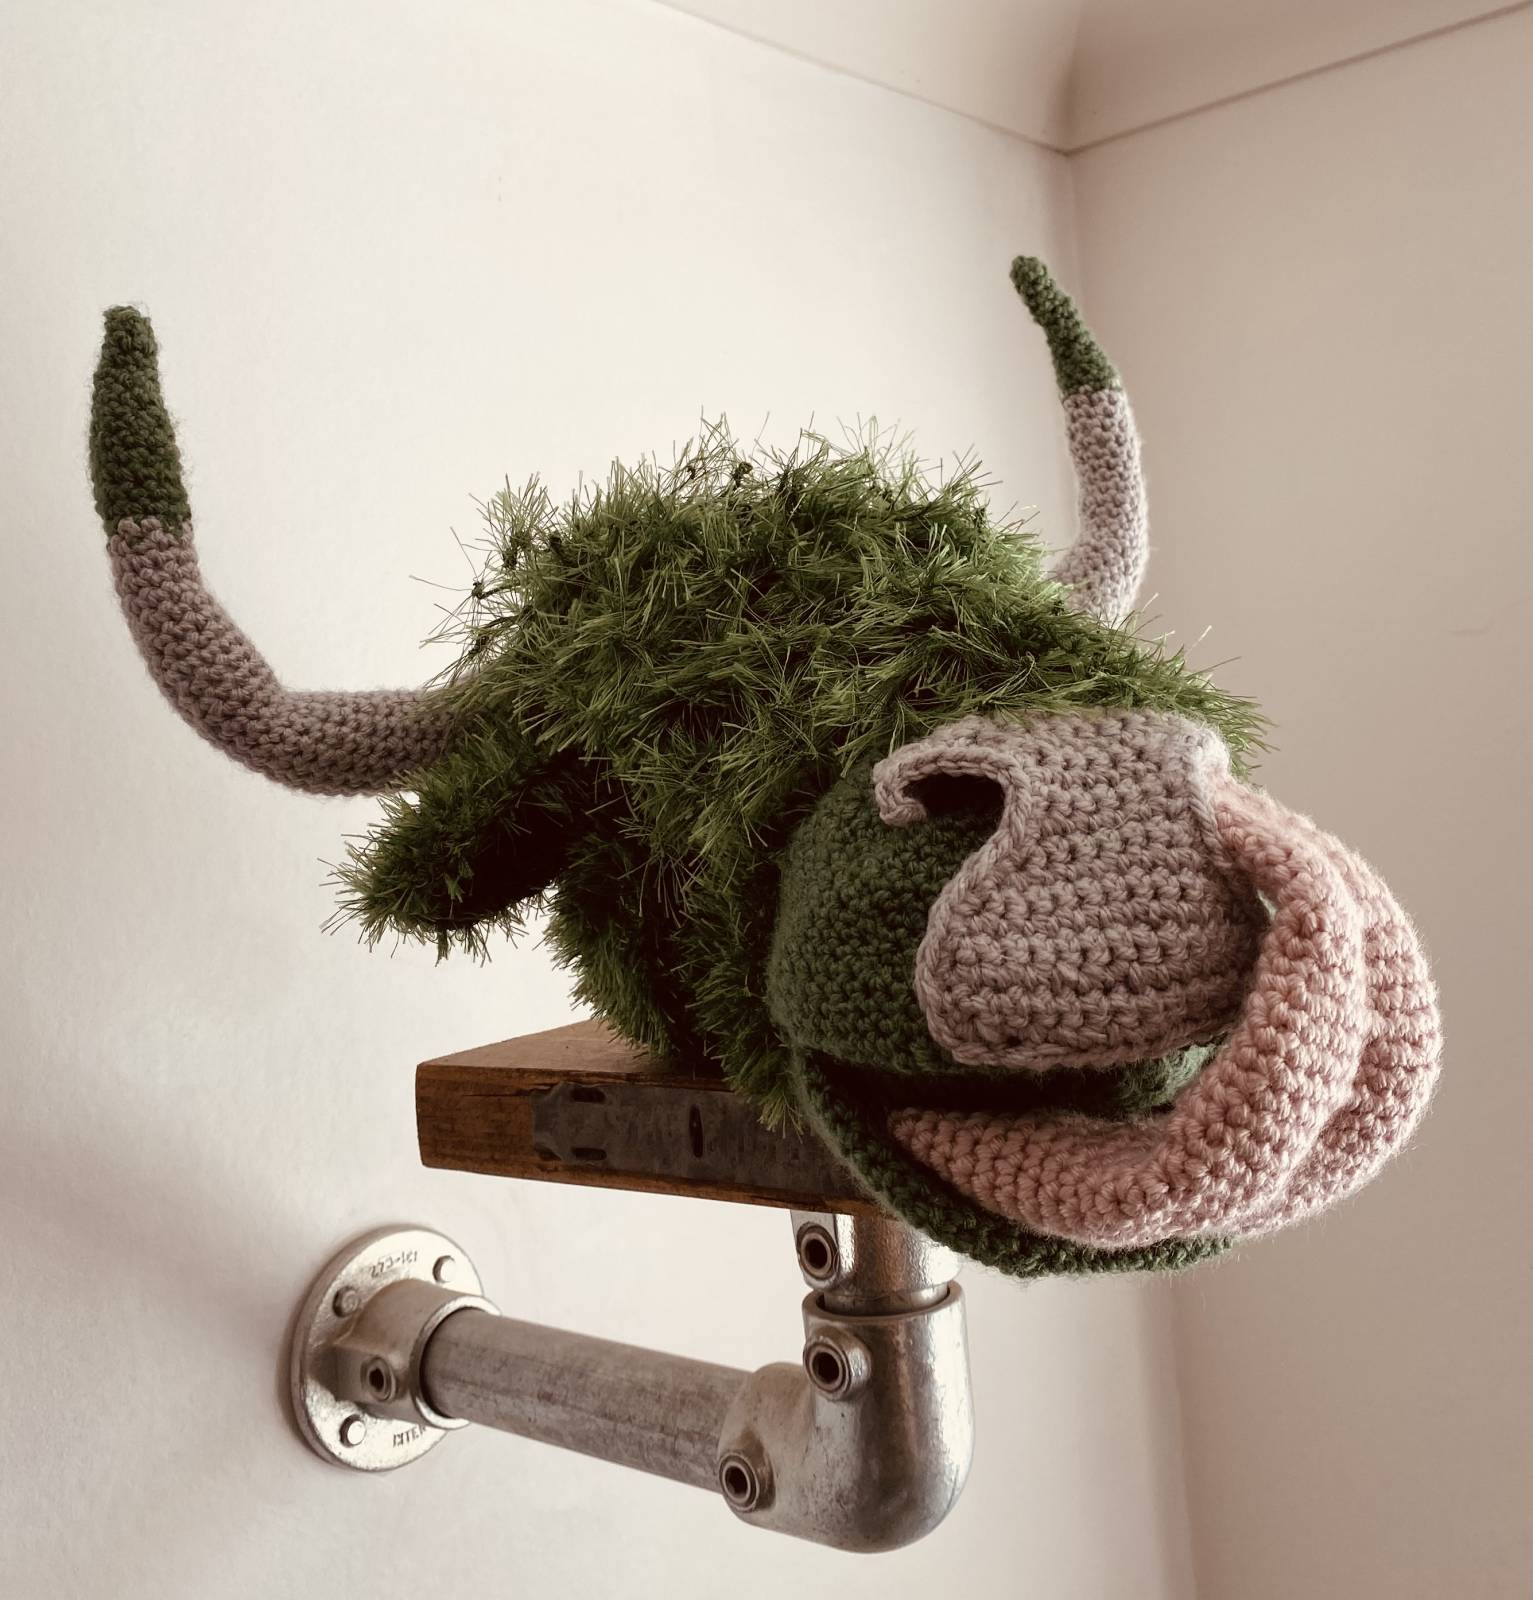 Amigurumi Highland Cow Crochet Pattern Review by Kate for Cottontail and Whiskers